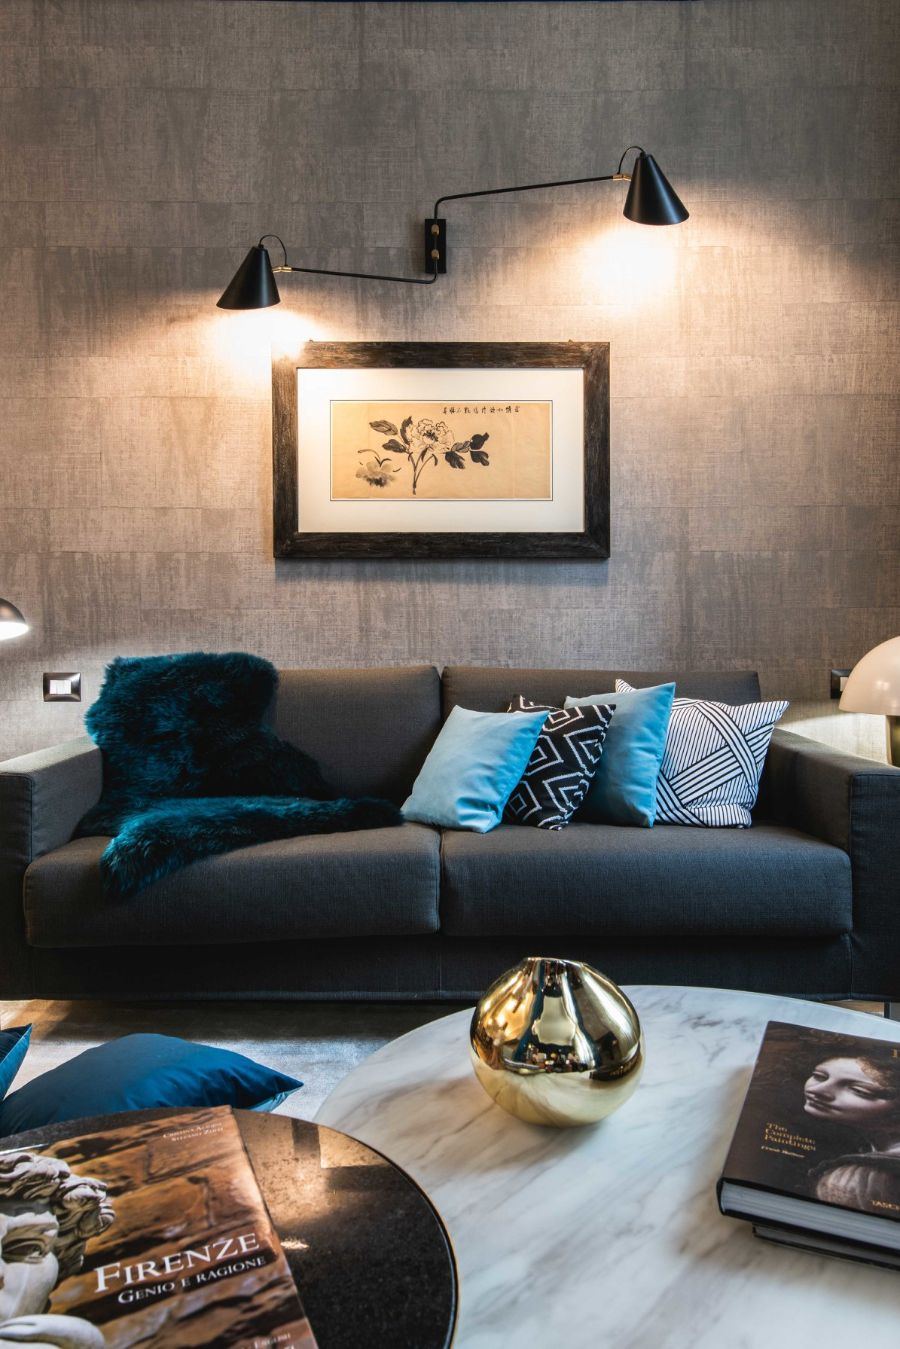 Be inspired by 20 of the Best Interior Designers from Florence interior designers Be Inspired by 20 of the Best Interior Designers from Florence Be inspired by 20 of the Best Interior Designers from Florence 15